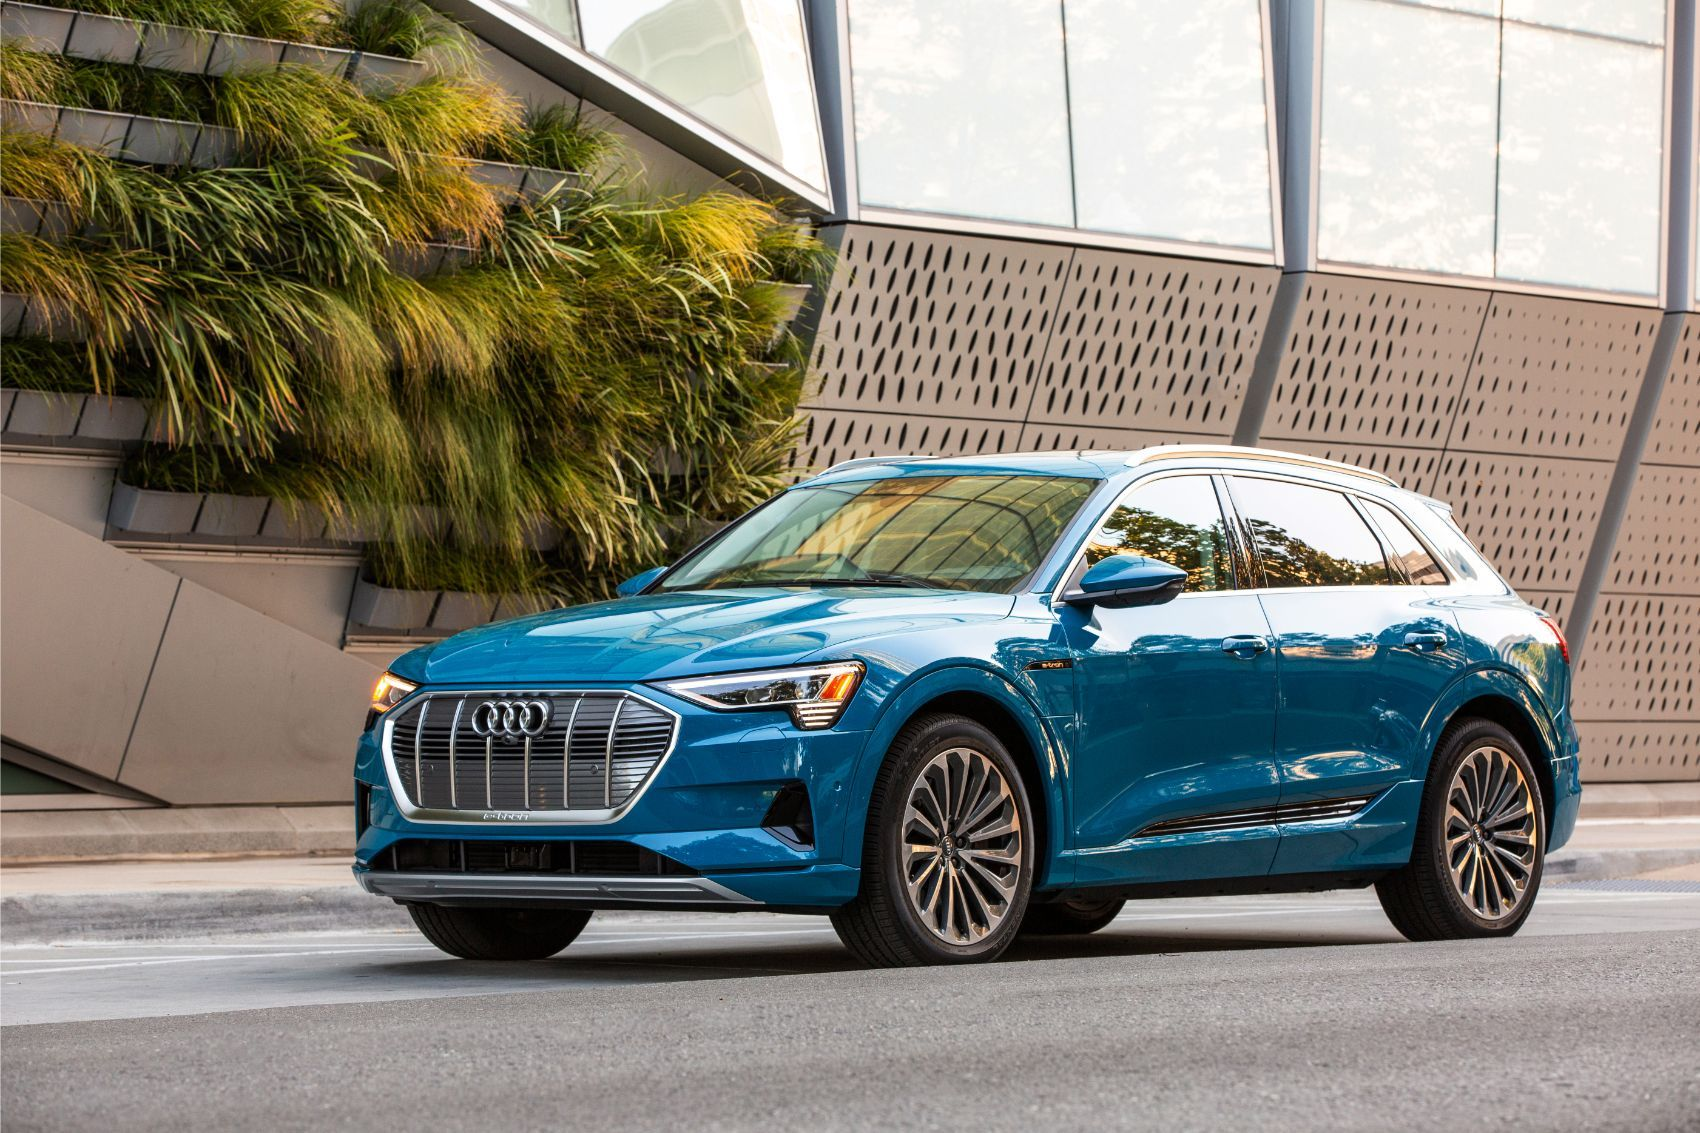 I Drove The Audi e-tron & Saw The Future. It's Weird.